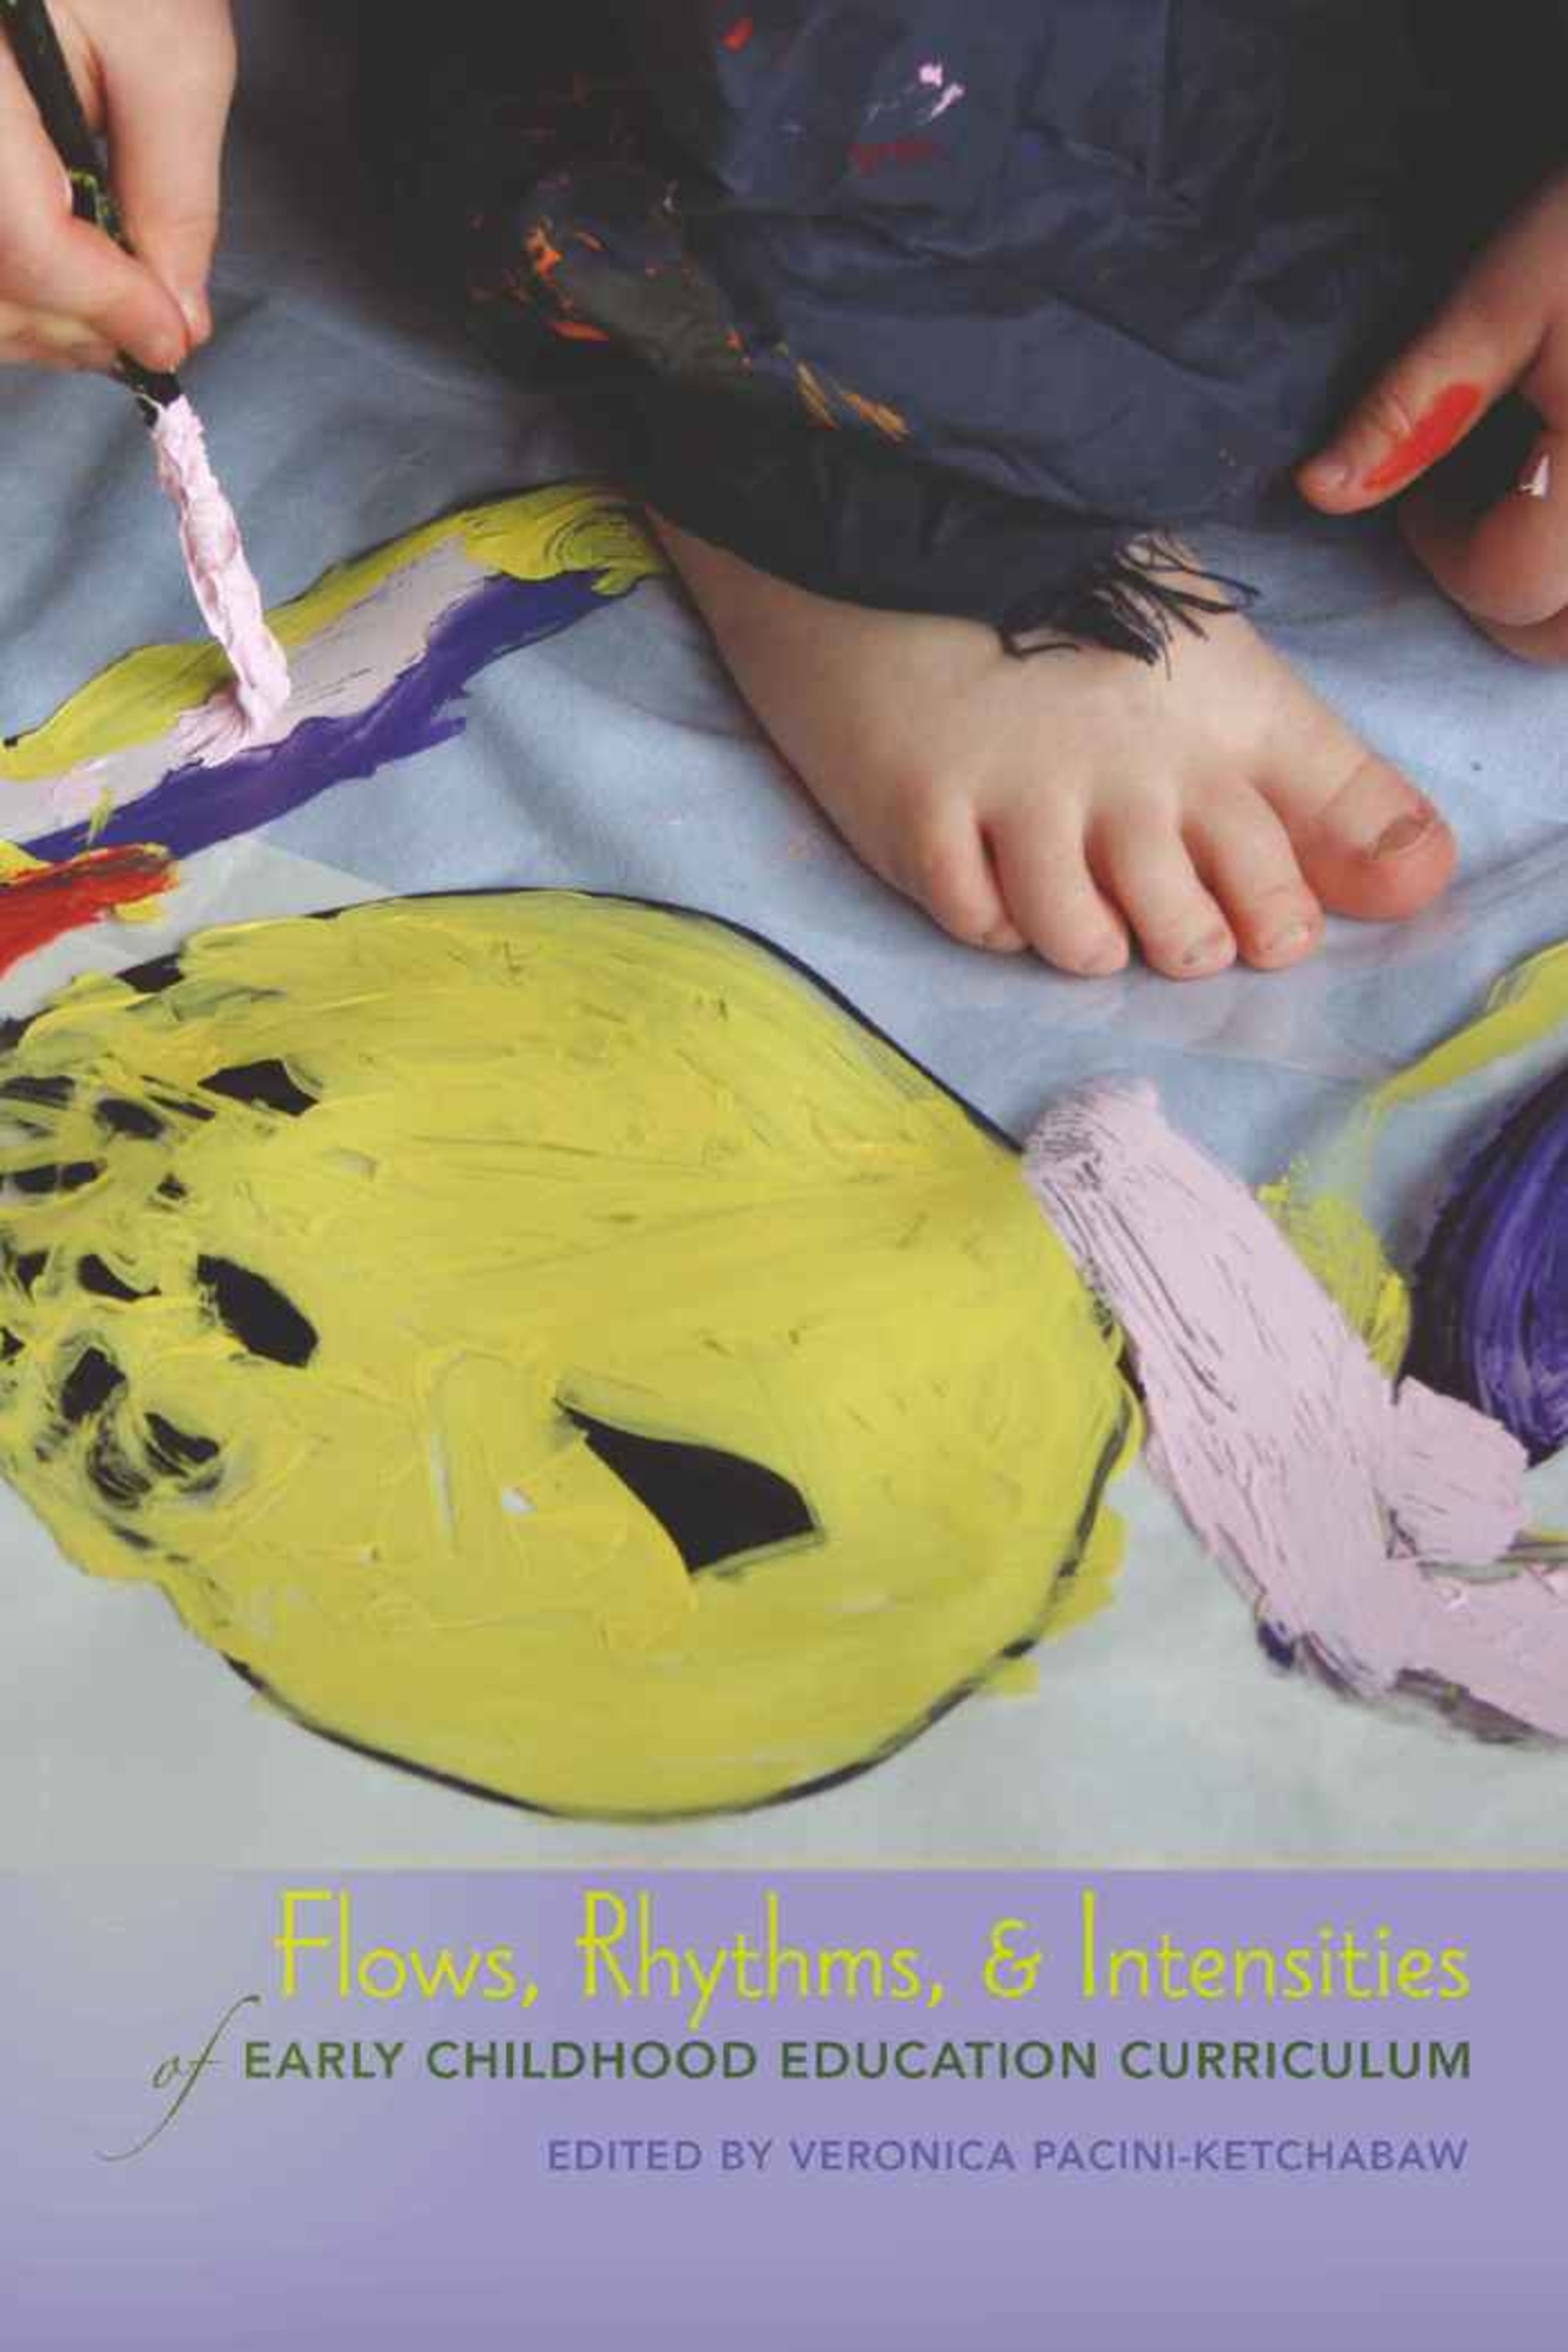 Title: Flows, Rhythms, and Intensities of Early Childhood Education Curriculum